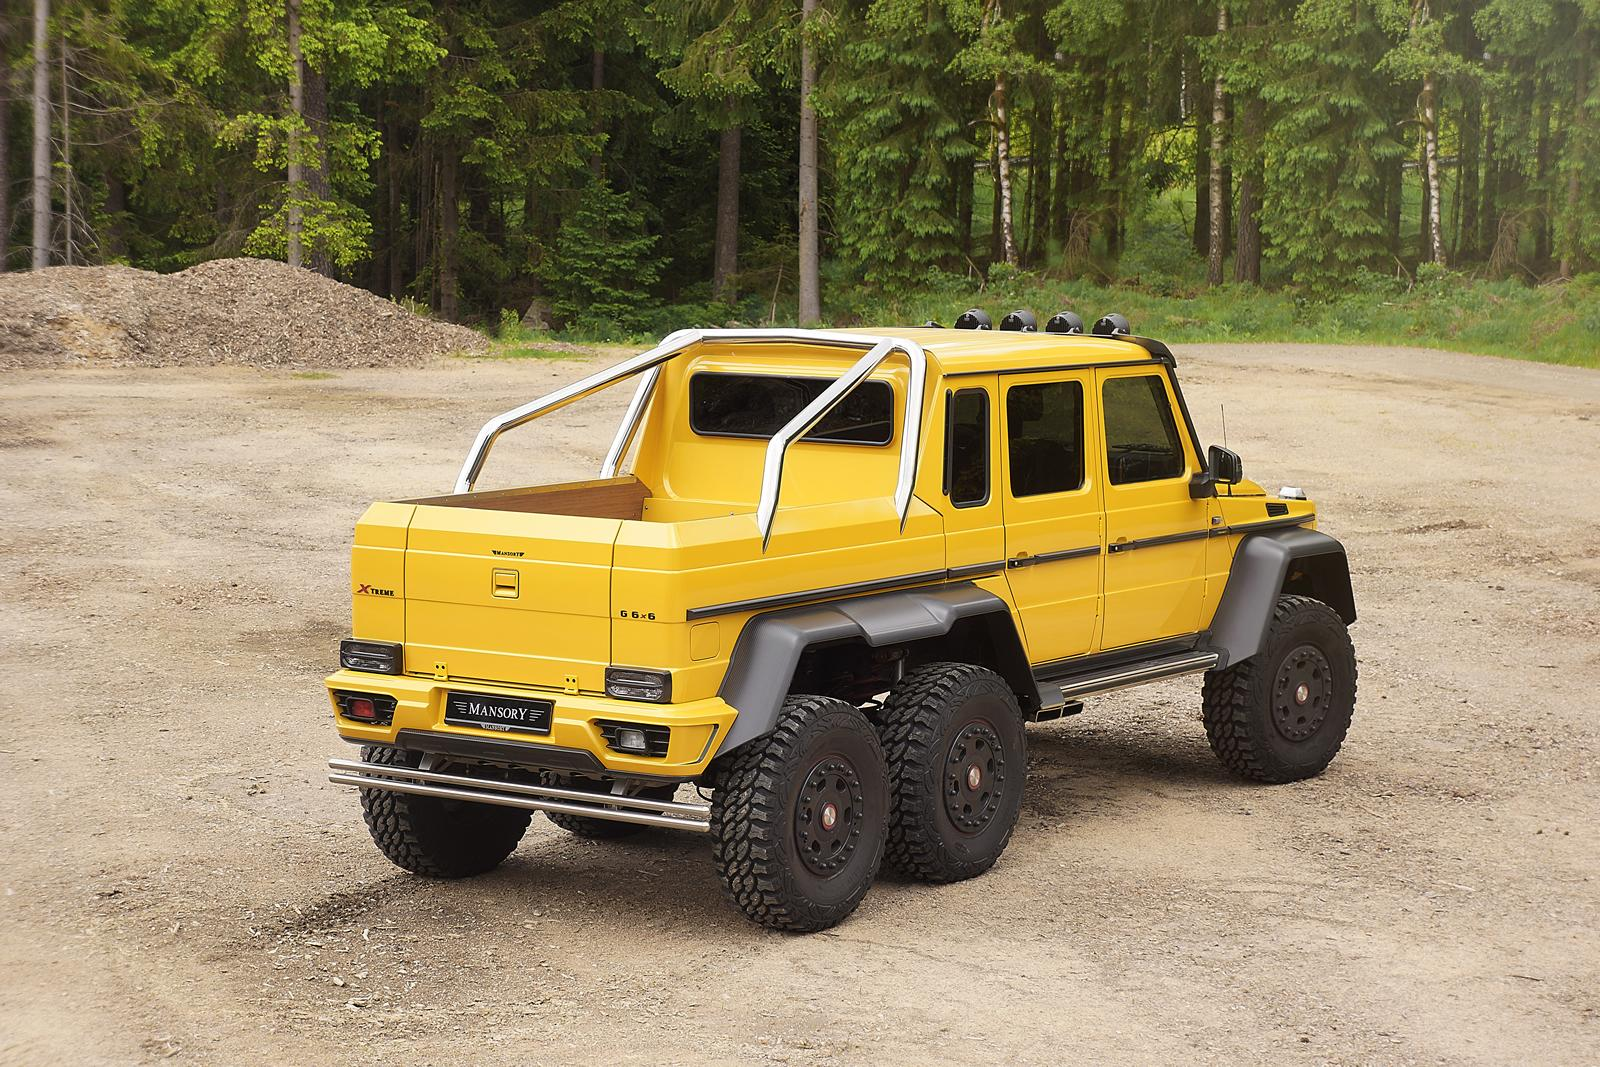 mercedes g63 amg 6x6 tuned to 840 hpmansory, stuffed with